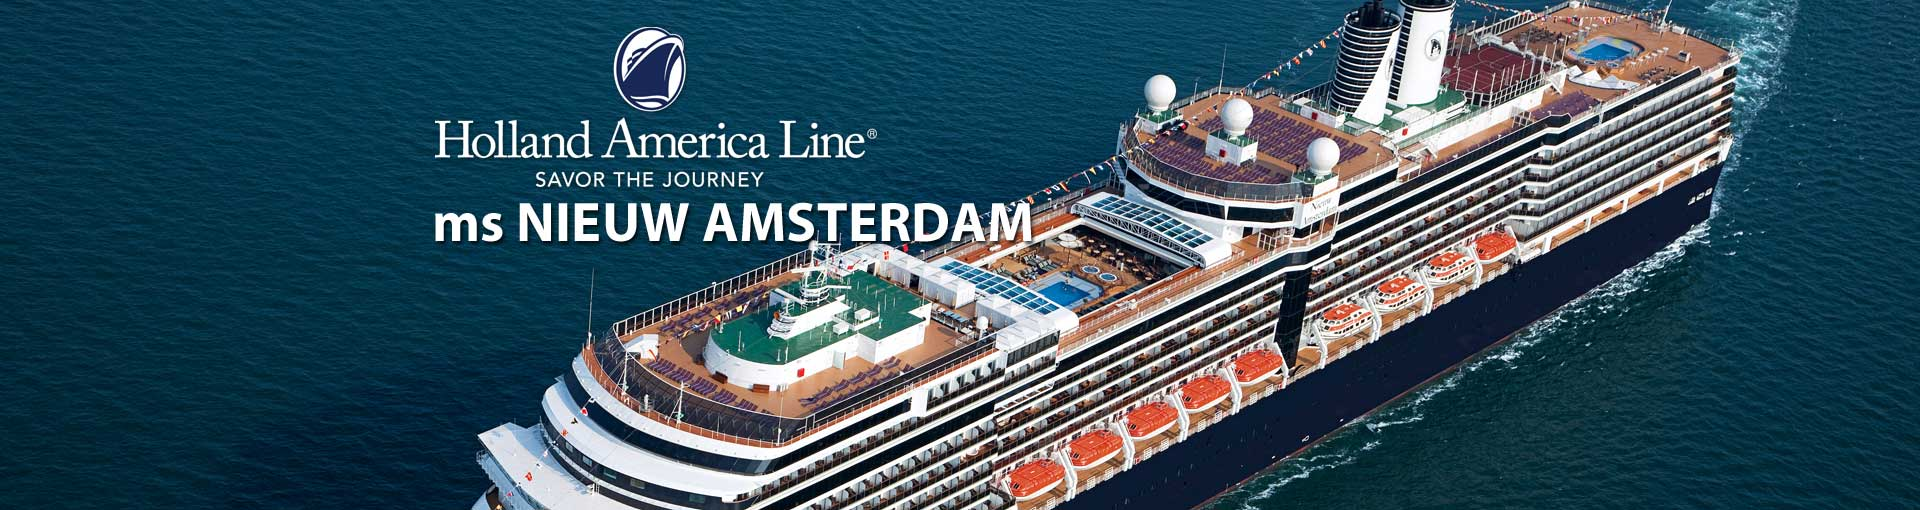 Holland America ms Nieuw Amsterdam cruise ship